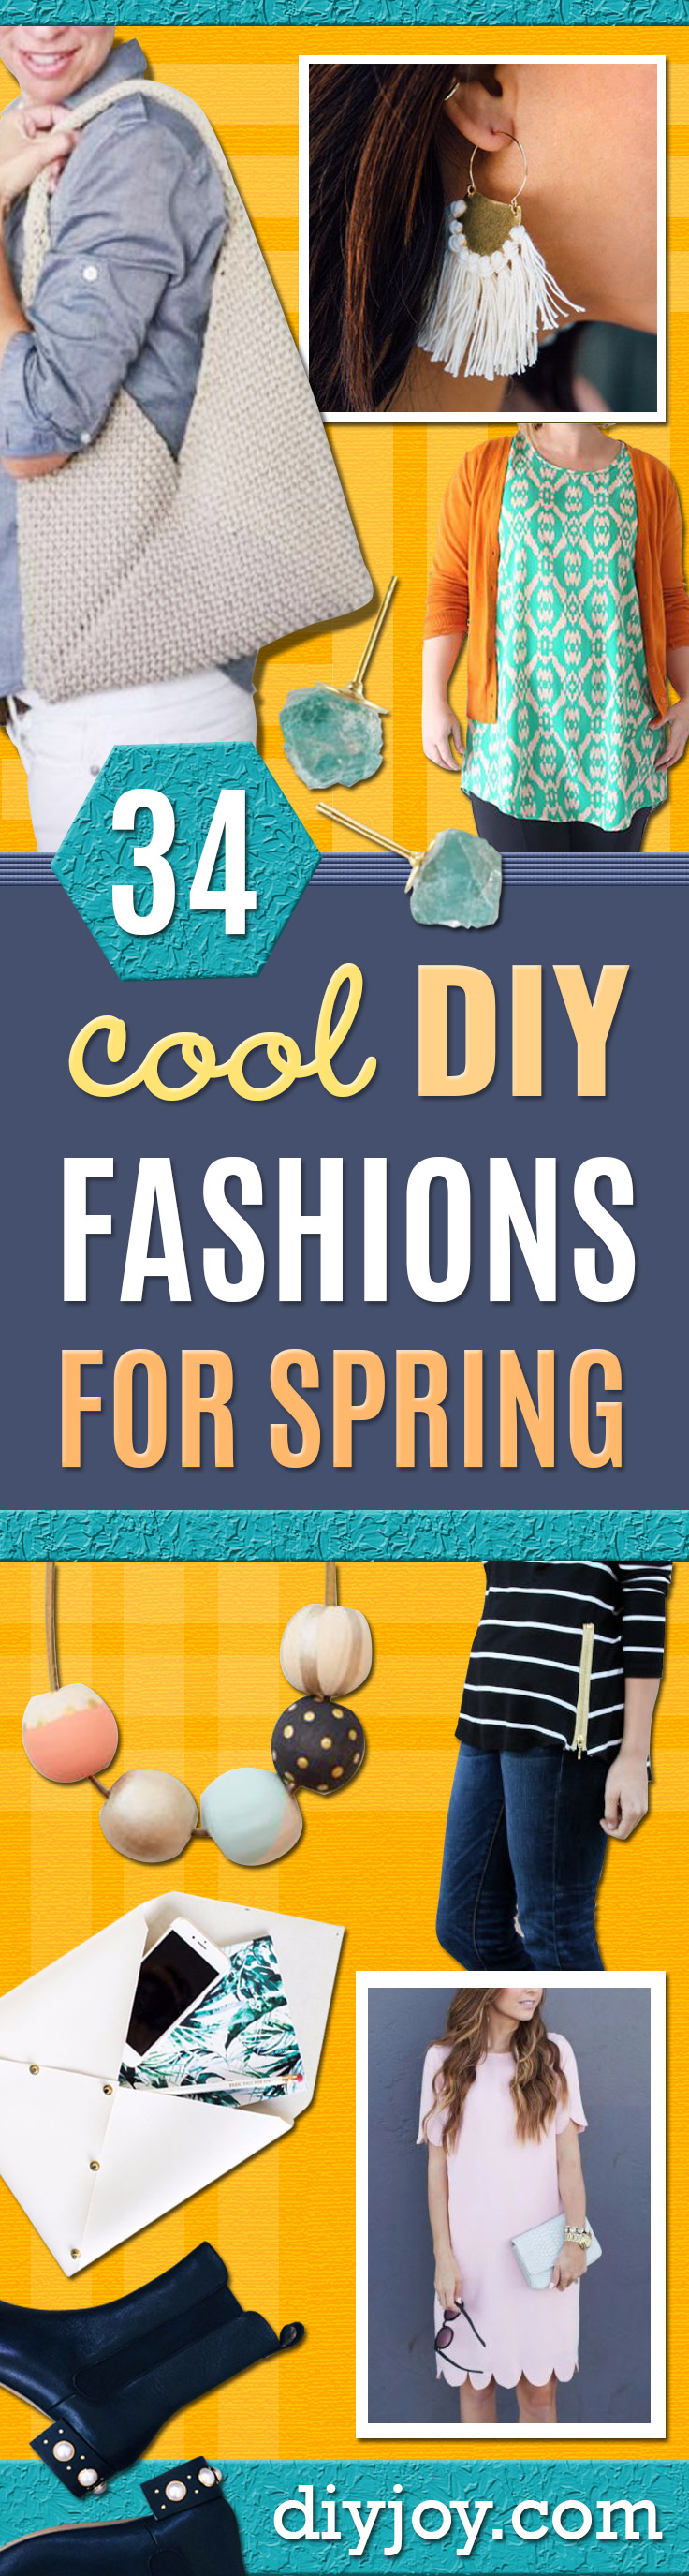 DIY Fashion for Spring - Easy Homemade Clothing Tutorials and Things To Make To Wear - Cute Patterns and Projects for Women to Make, T-Shirts, Skirts, Dresses, Shorts and Ideas for Jeans and Pants - Tops, Tanks and Tees With Free Tutorial Ideas and Instructions http://diyjoy.com/fashion-for-spring